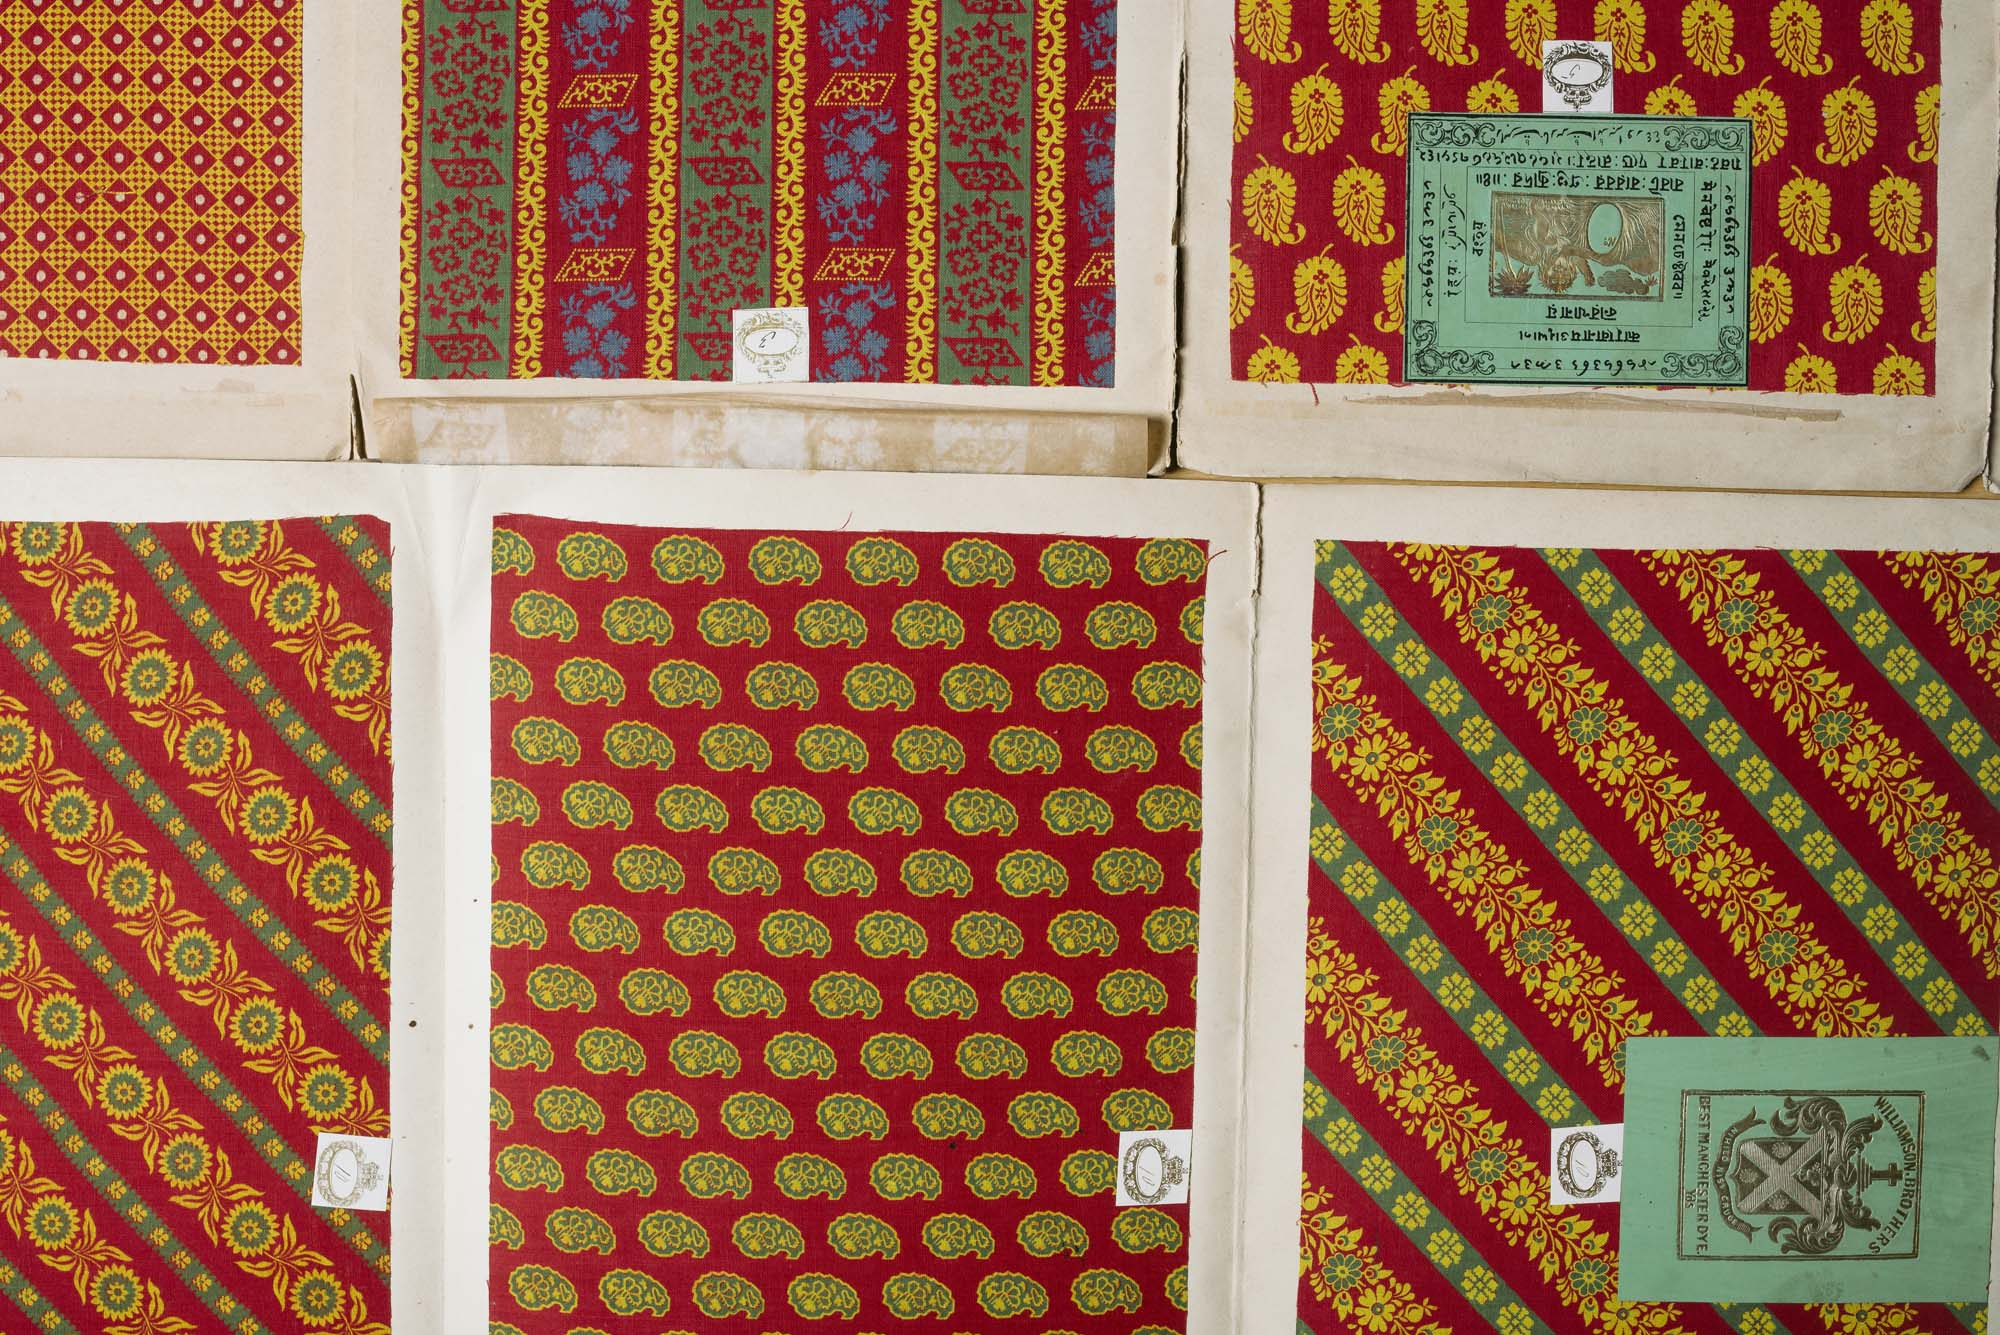 a photo of different samples of cloth in different patterns